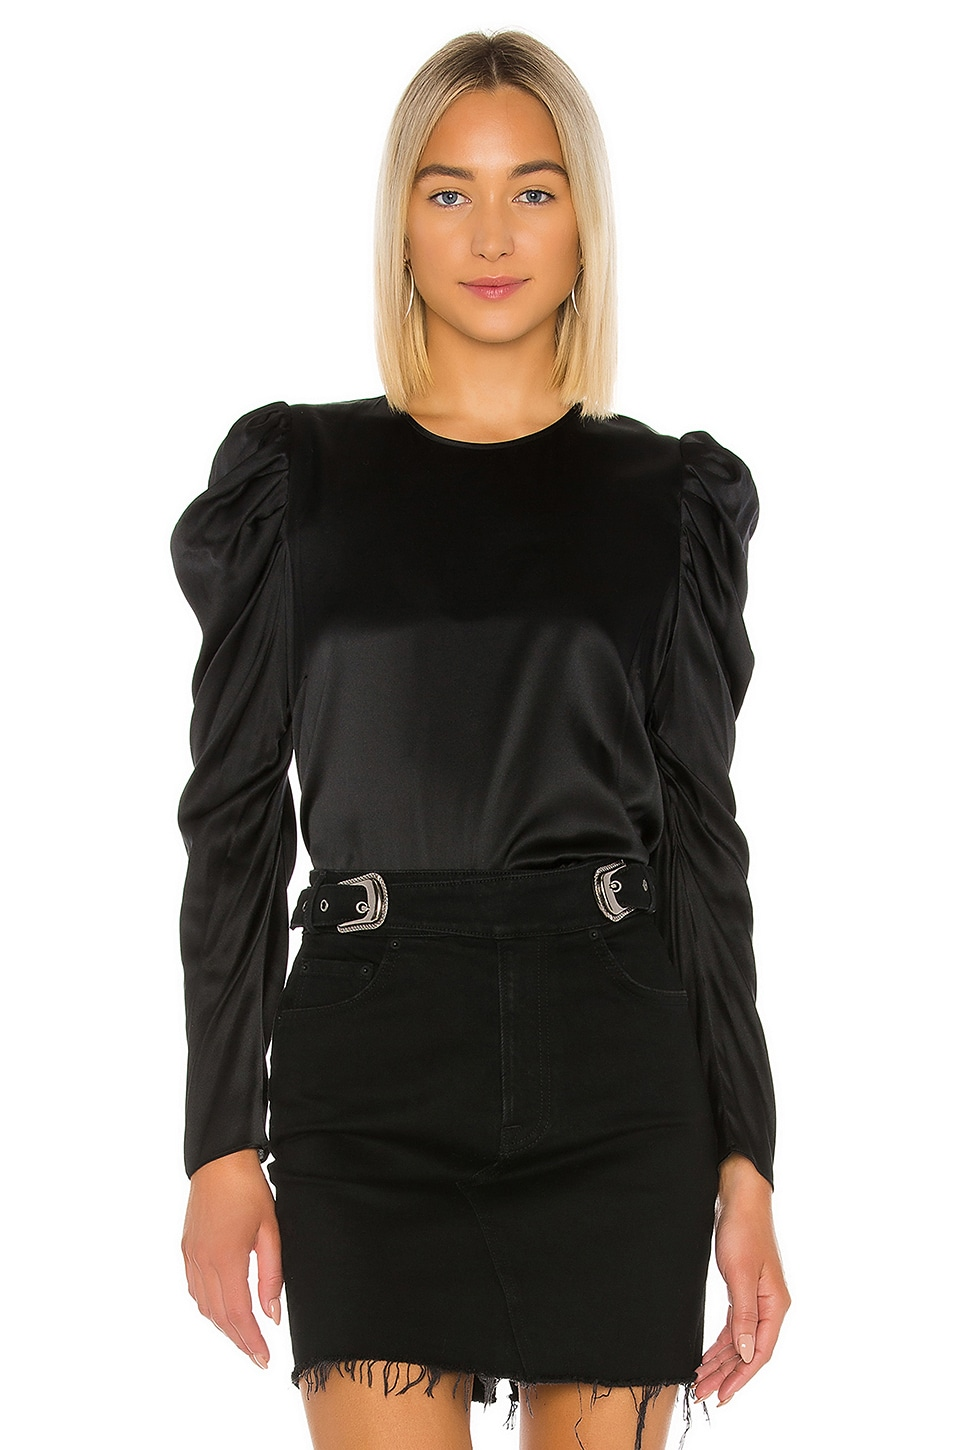 Generation Love Penelope Blouse in Black